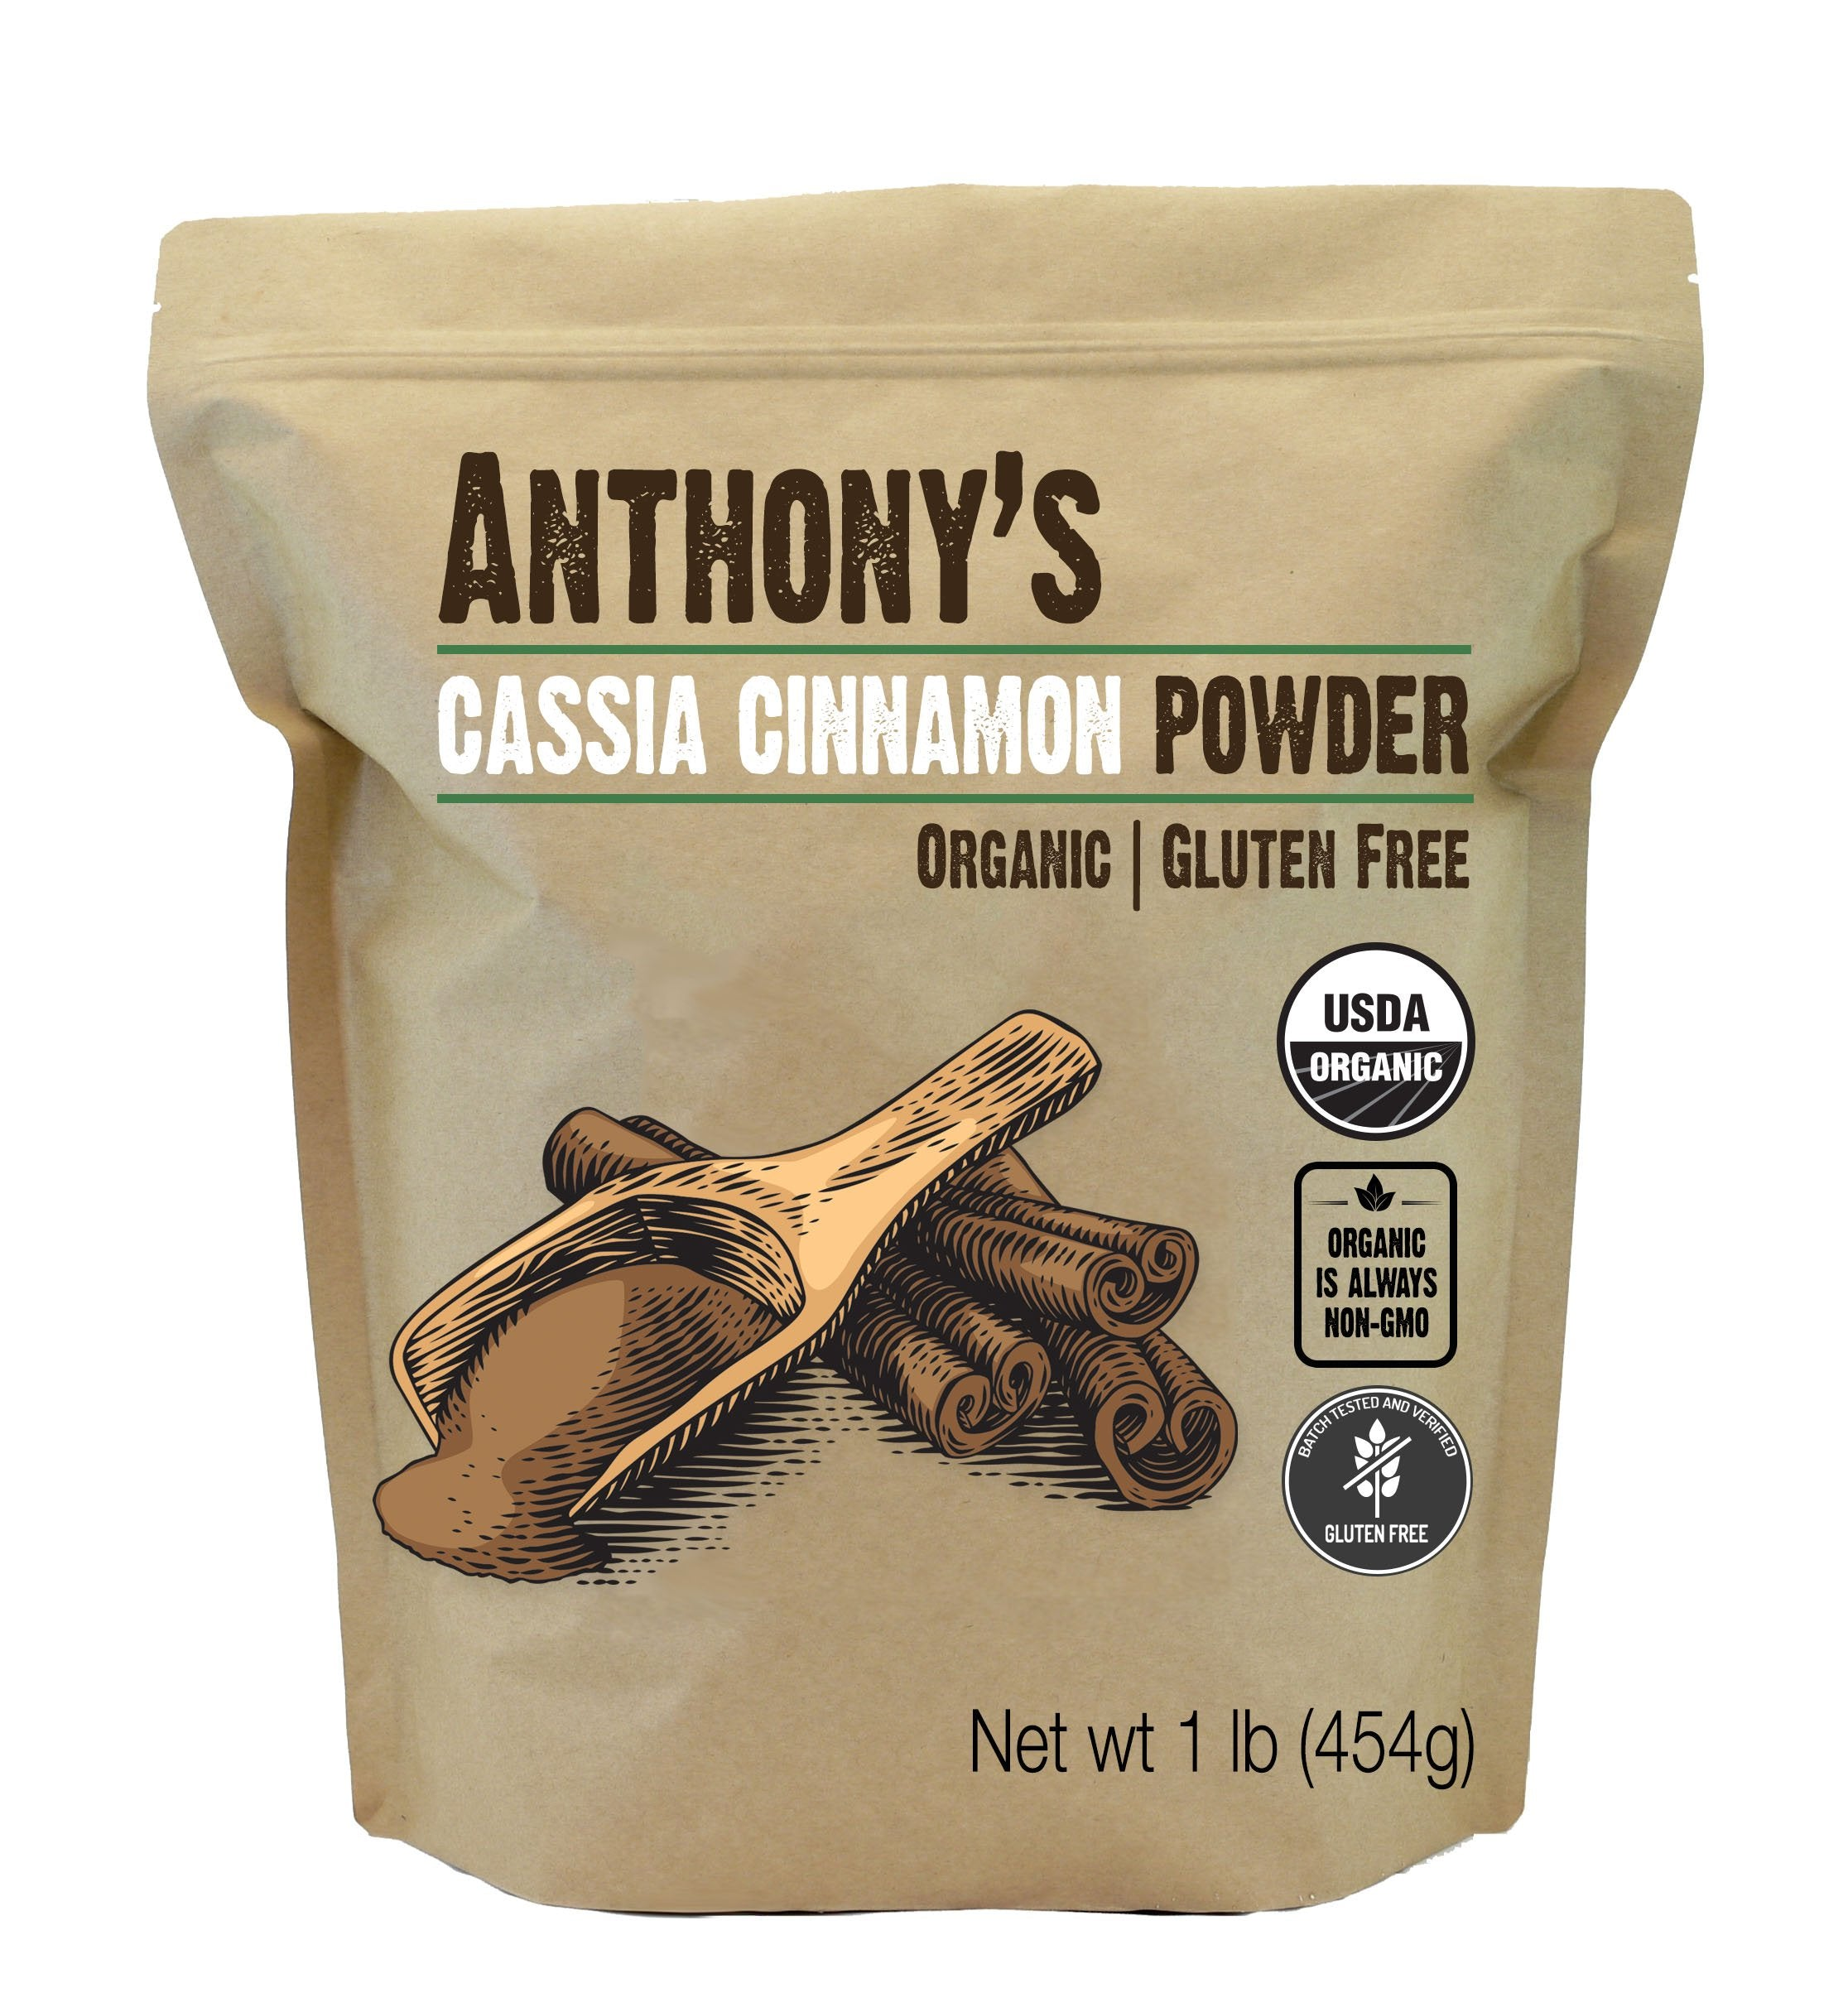 Cassia Cinnamon Powder: USDA Organic & Batch Tested Gluten Free